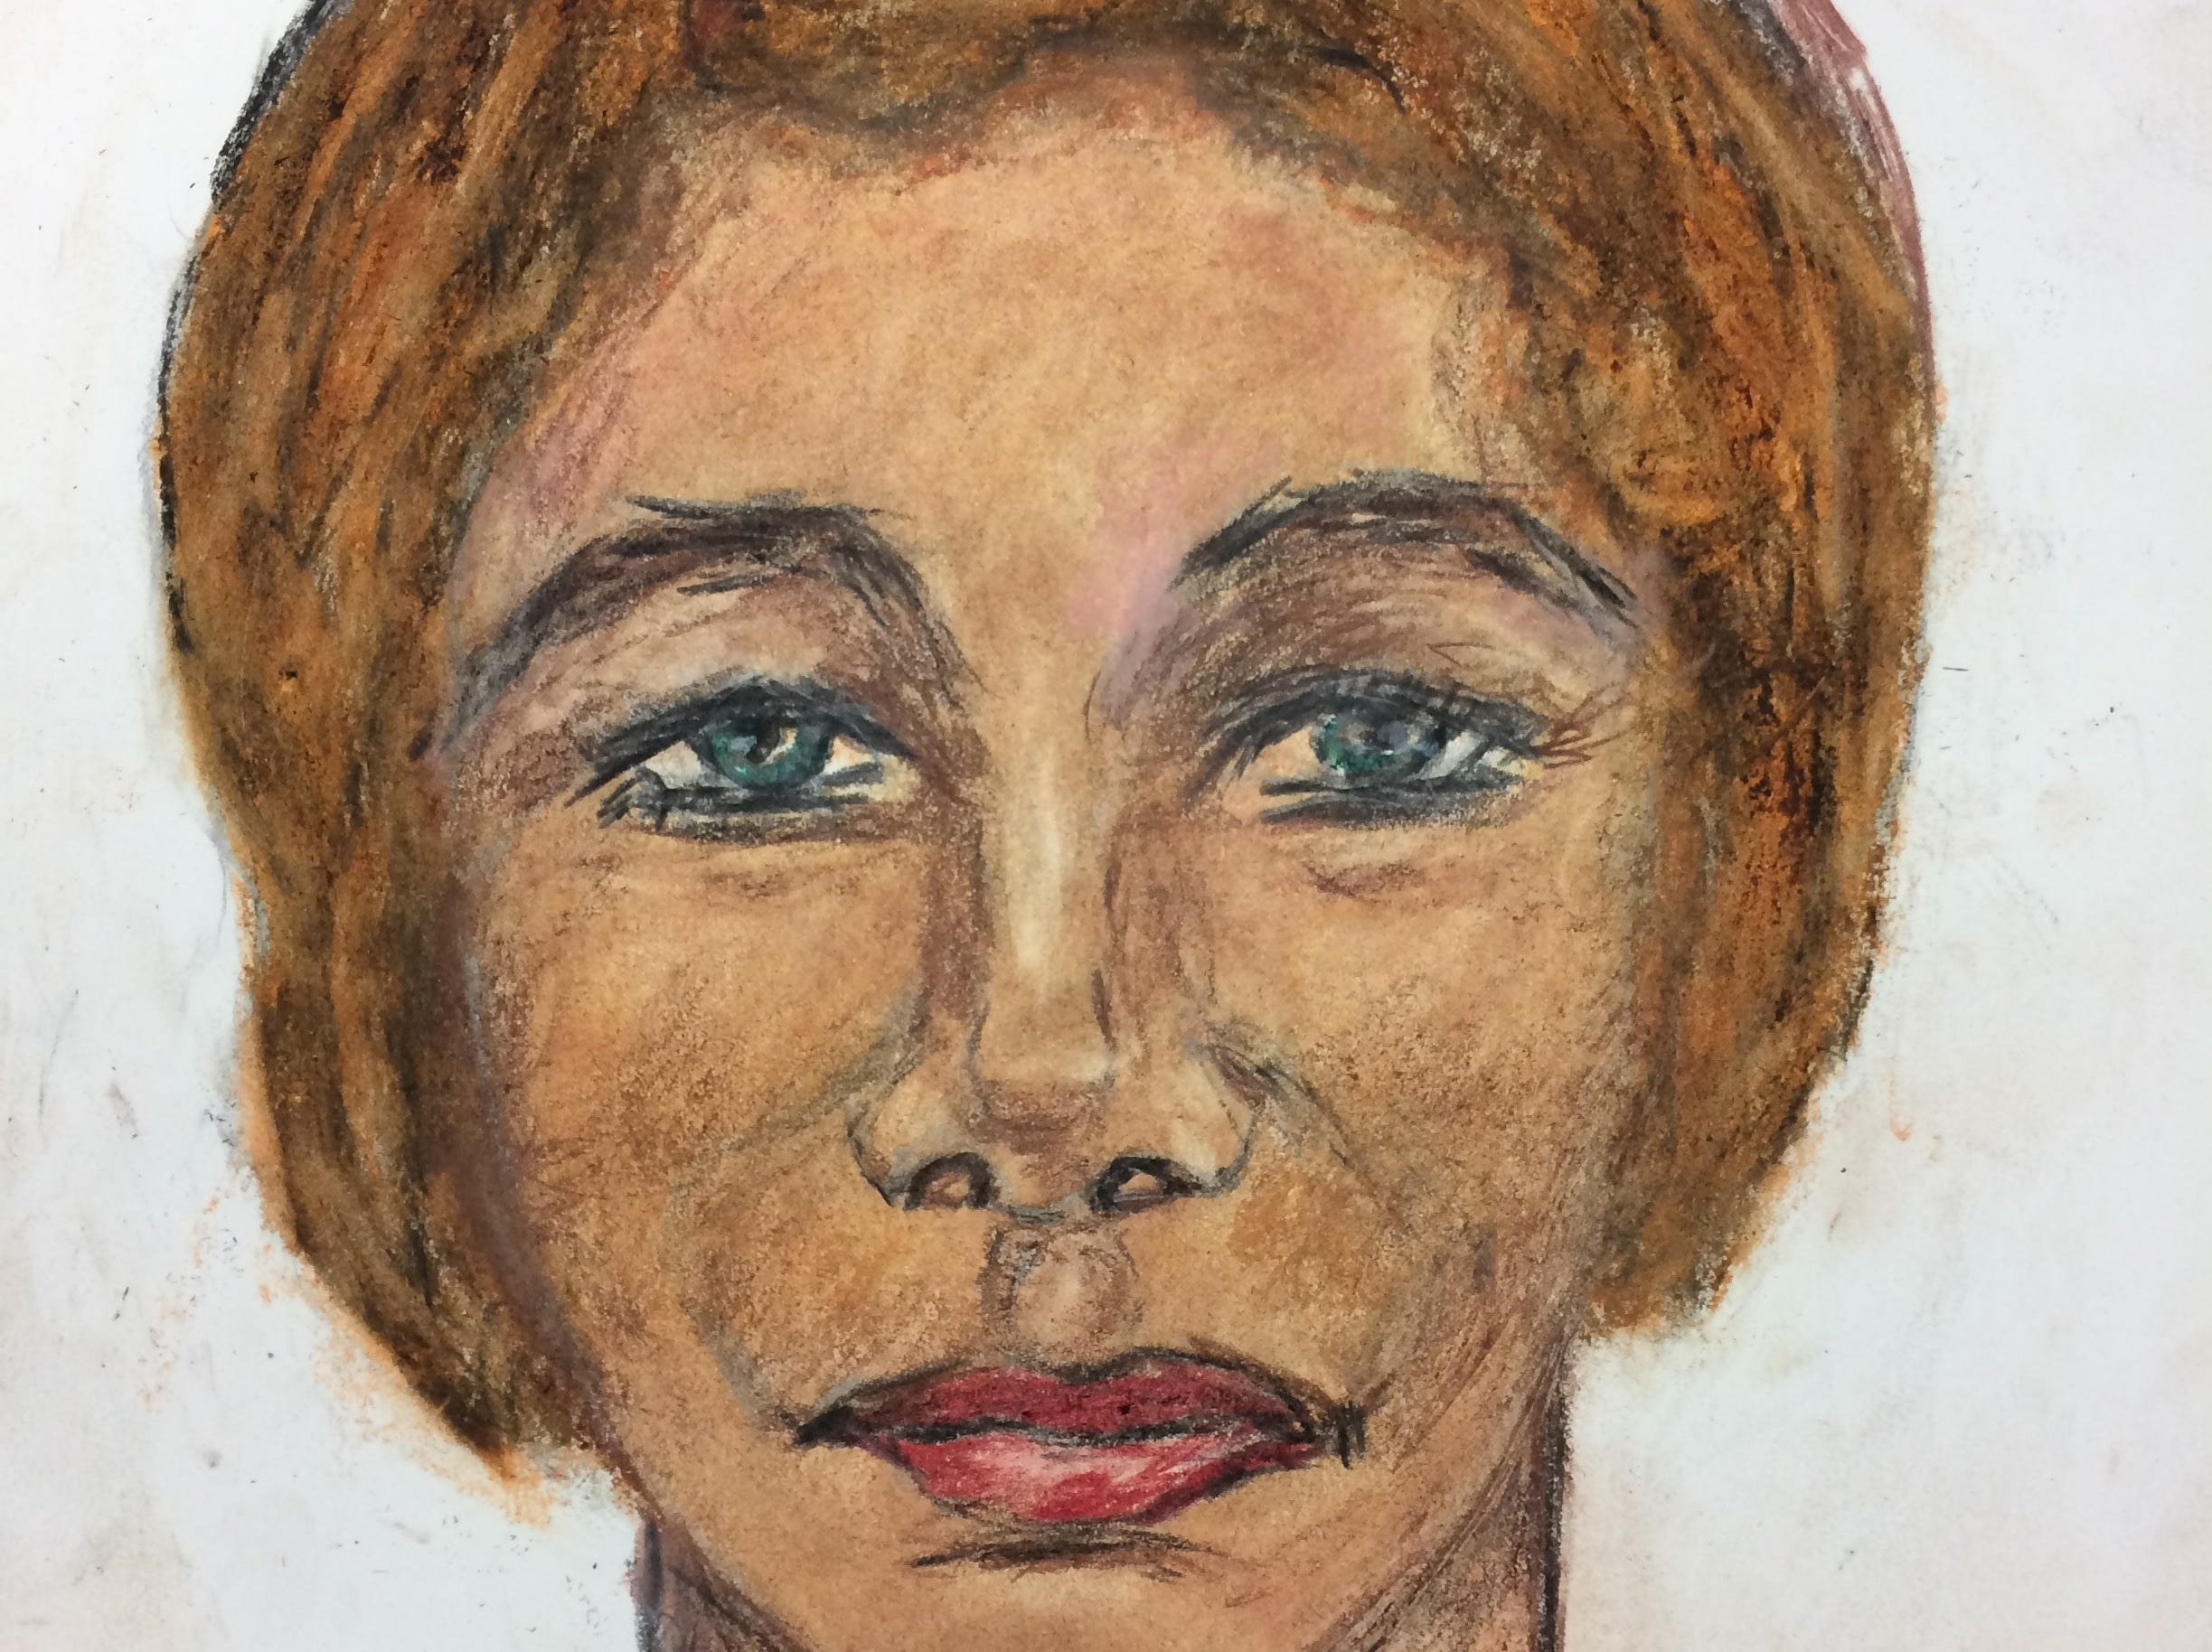 Serial killer Samuel Little drew this woman who he says he murdered in 1984. Little told authorities he met her in Columbus, Ohio and disposed of her body somewhere in northern Kentucky.